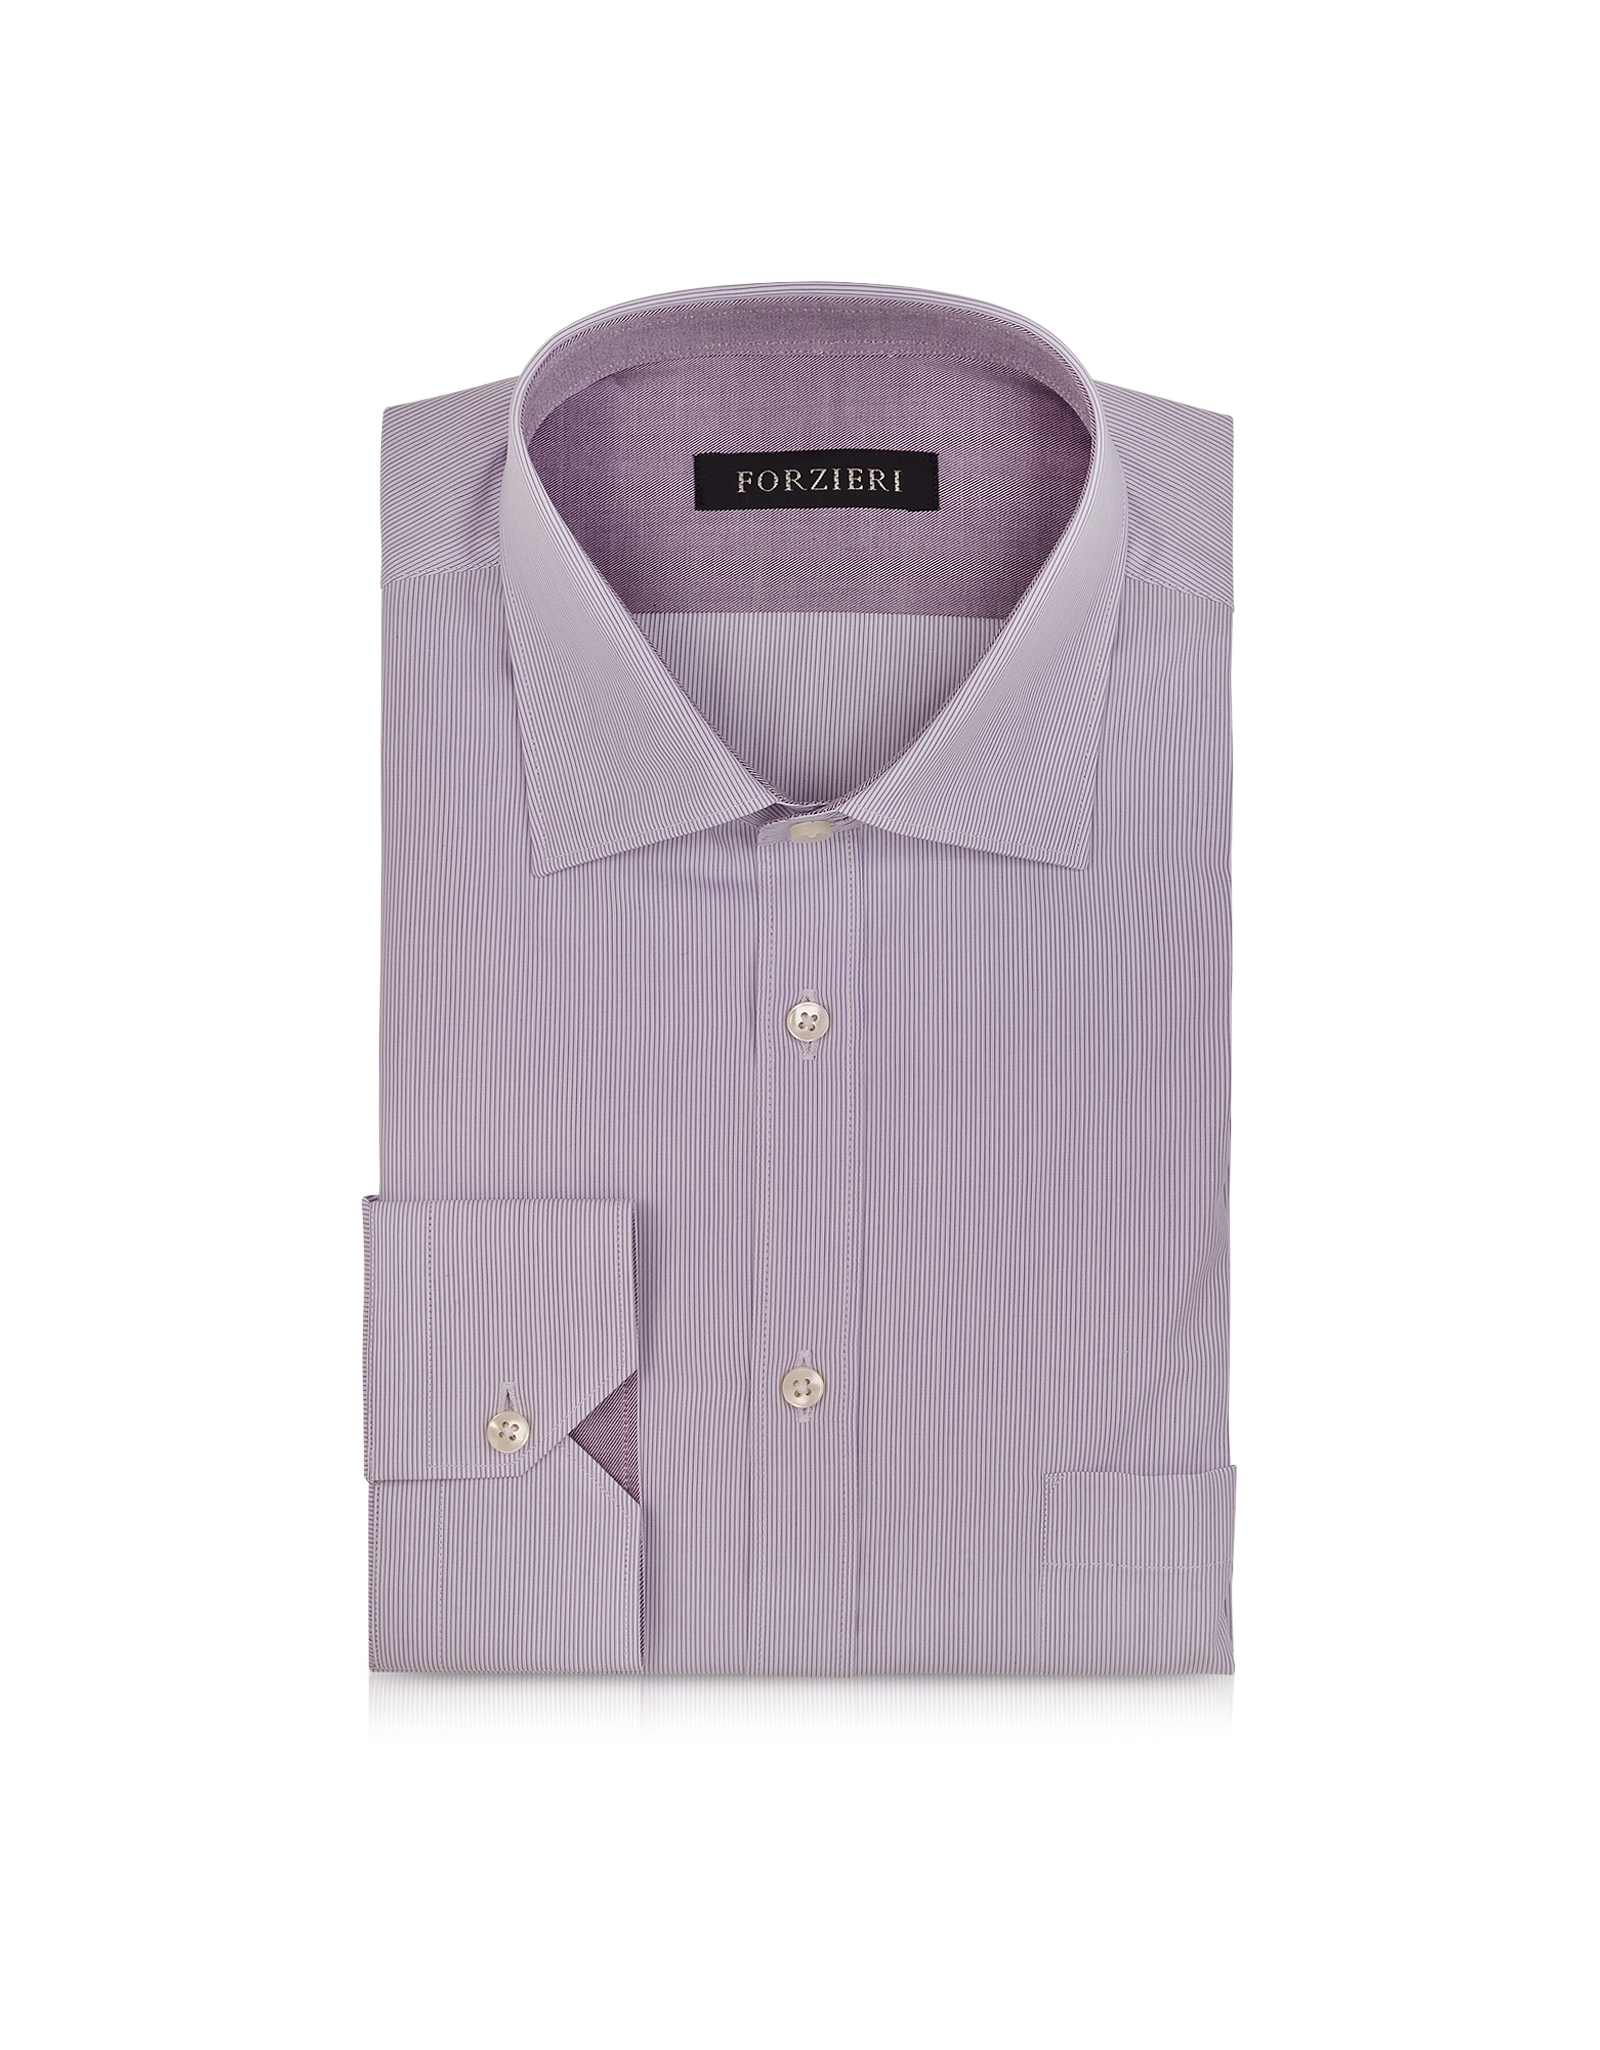 Lyst Forzieri Light Purple Striped Cotton Shirt In: light purple dress shirt men